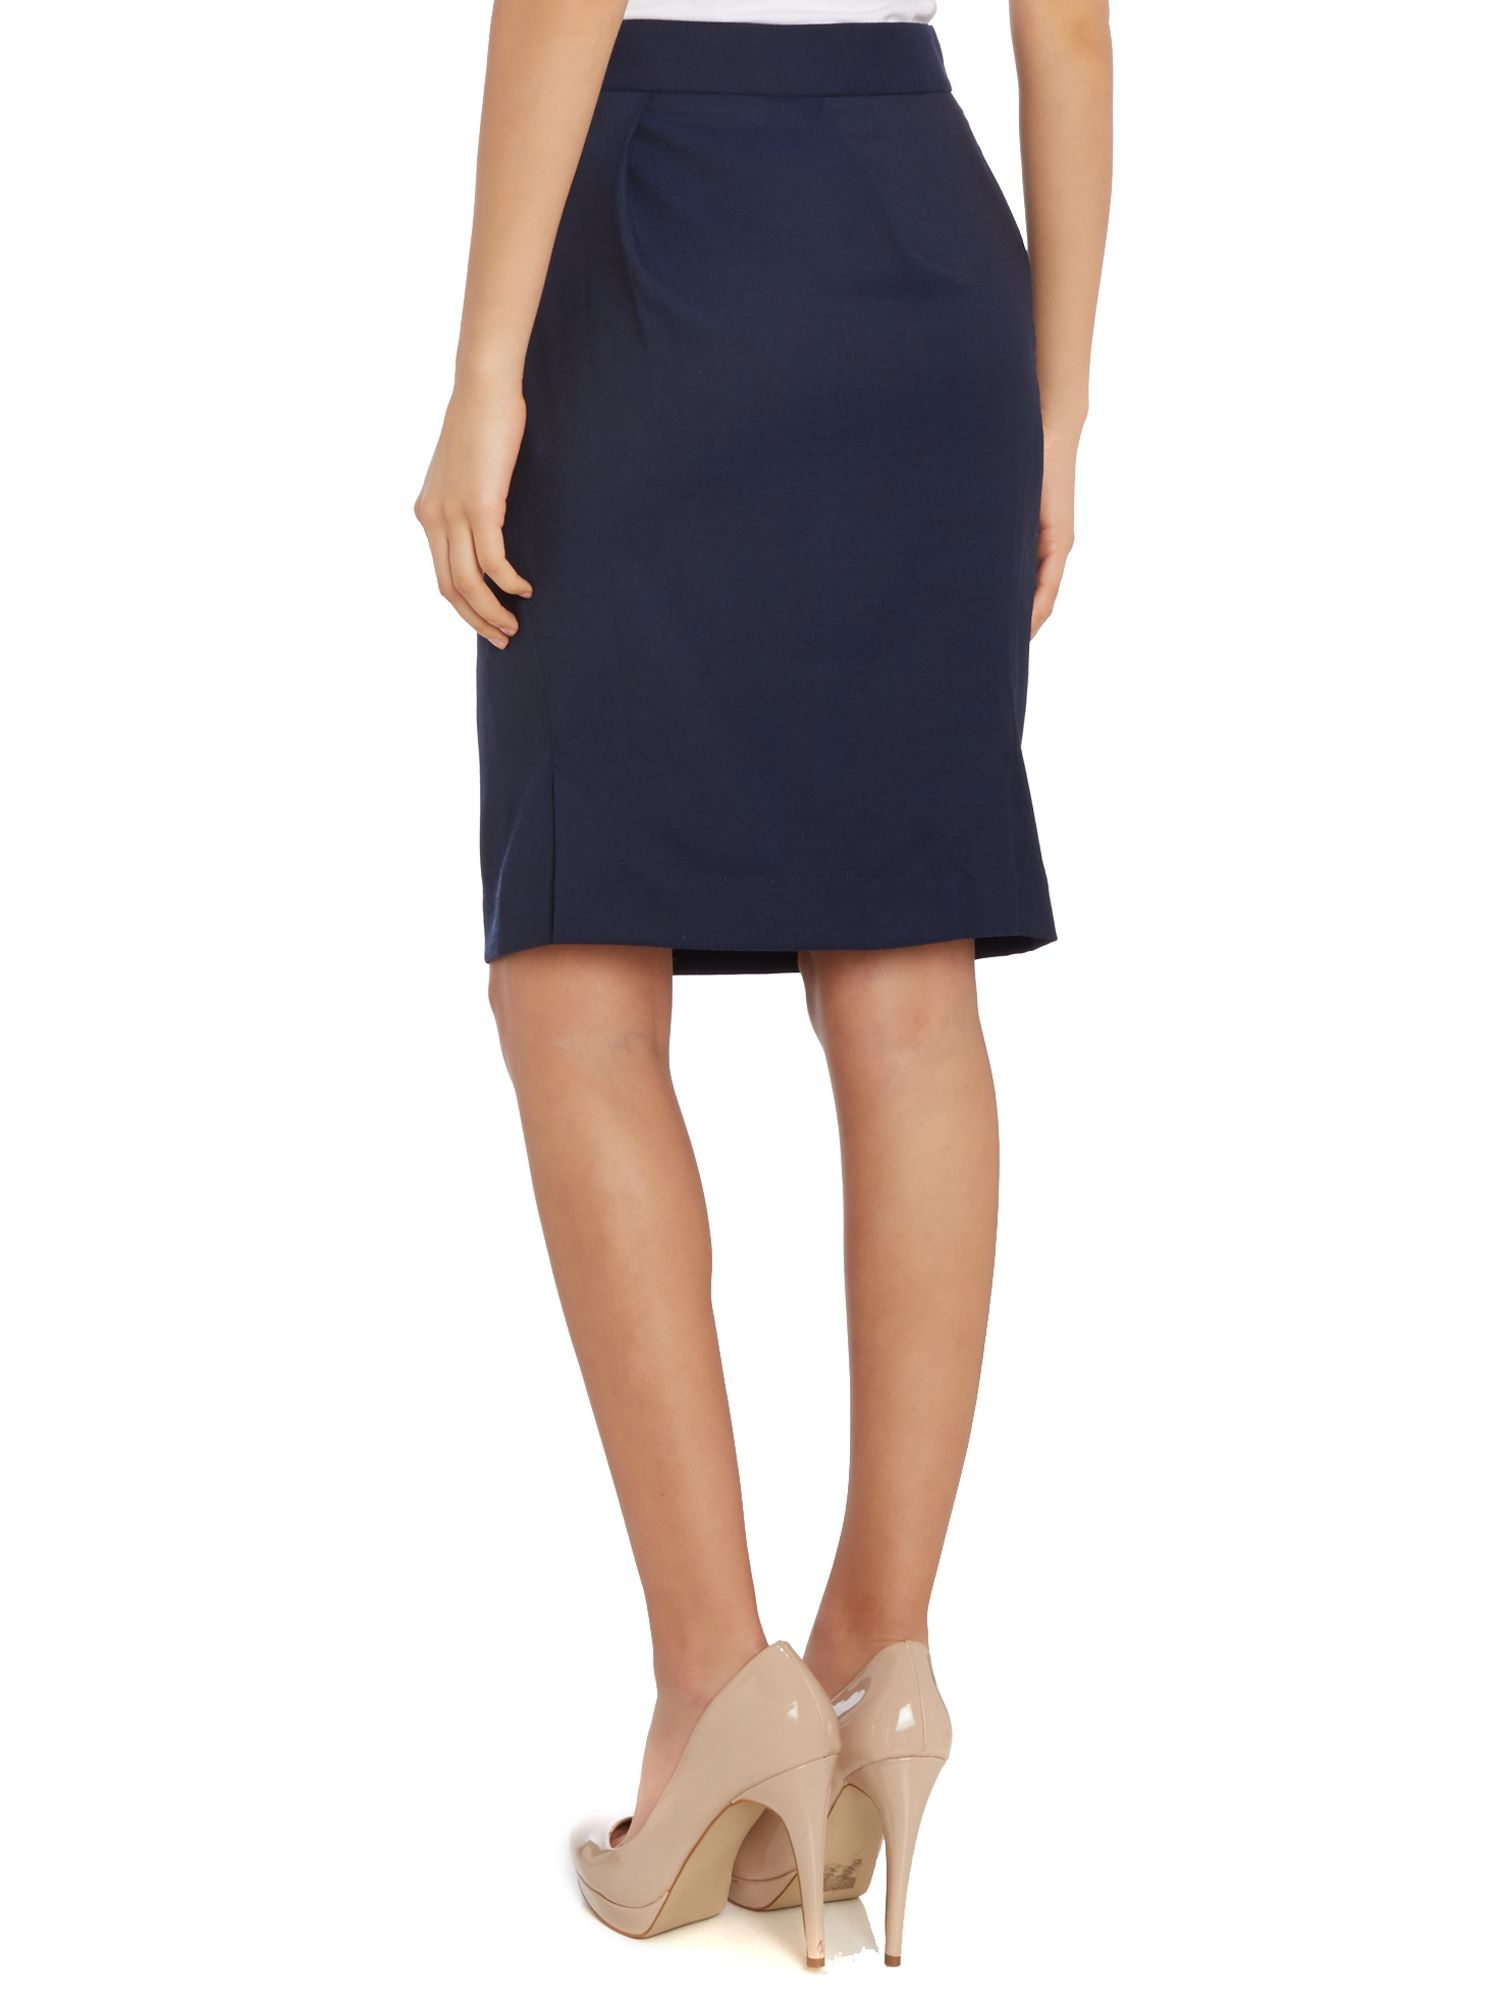 vivienne westwood anglomania pencil skirt in blue navy